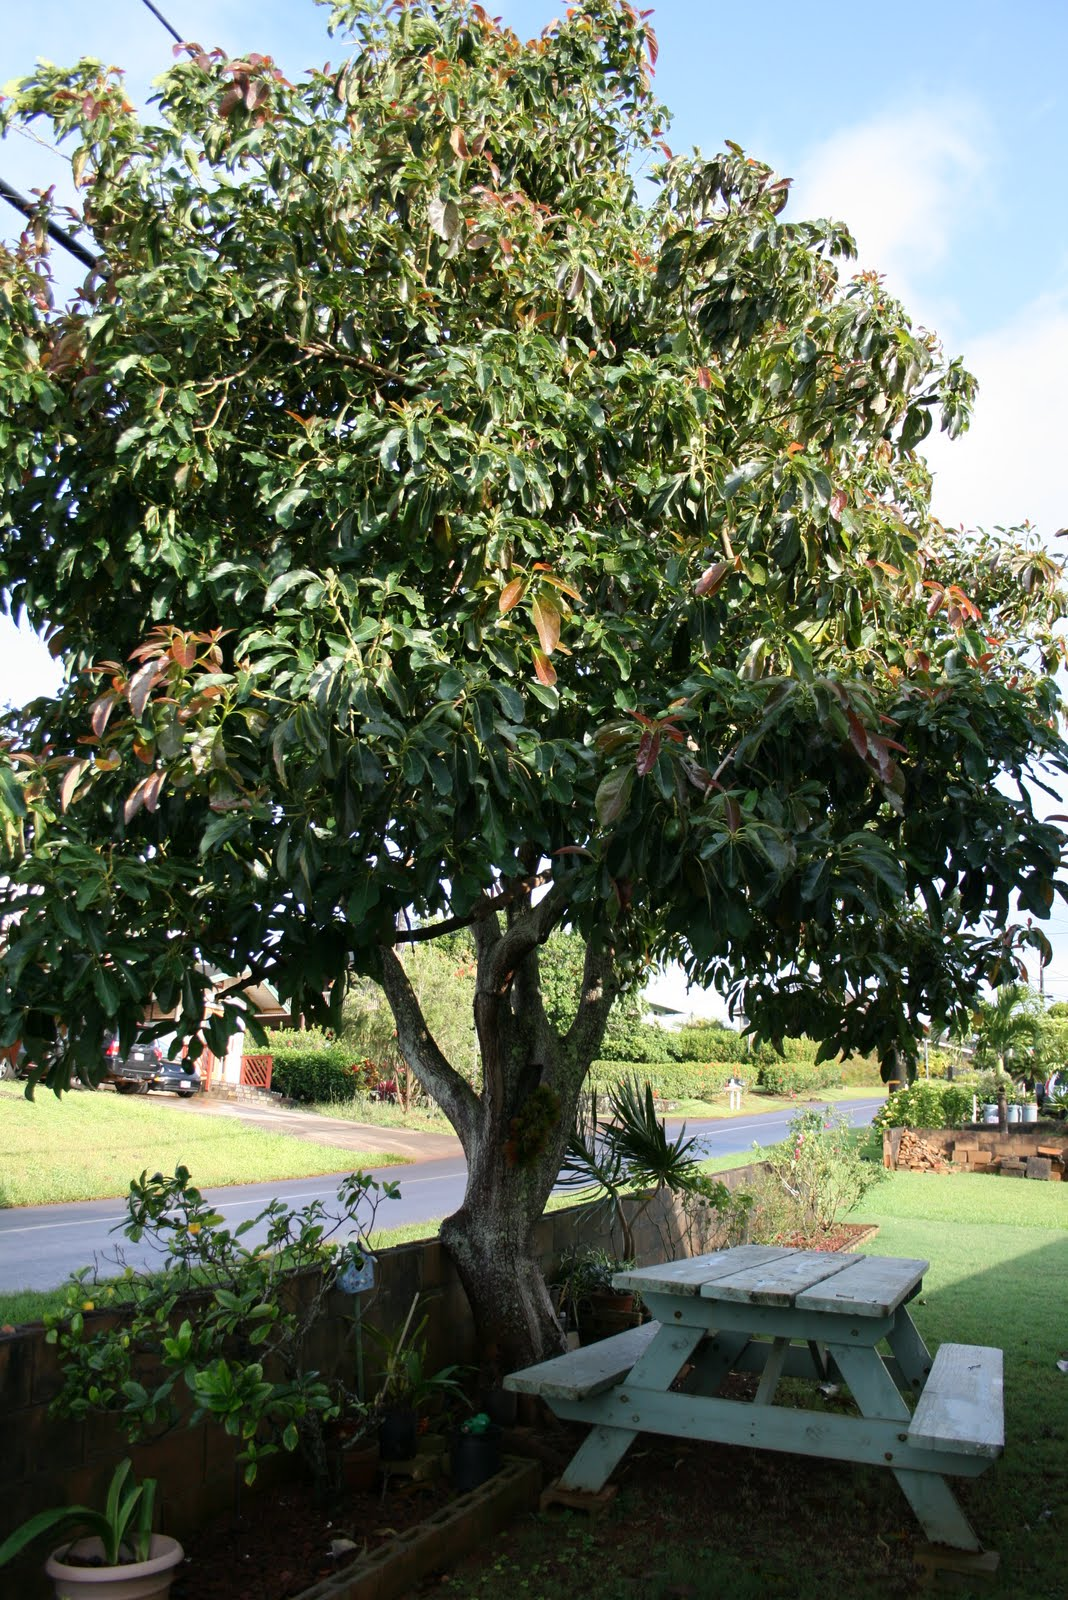 Dwarf Avocado Tree http://tastytravels-holly.blogspot.com/2011/05/dads-avocado-tree.html